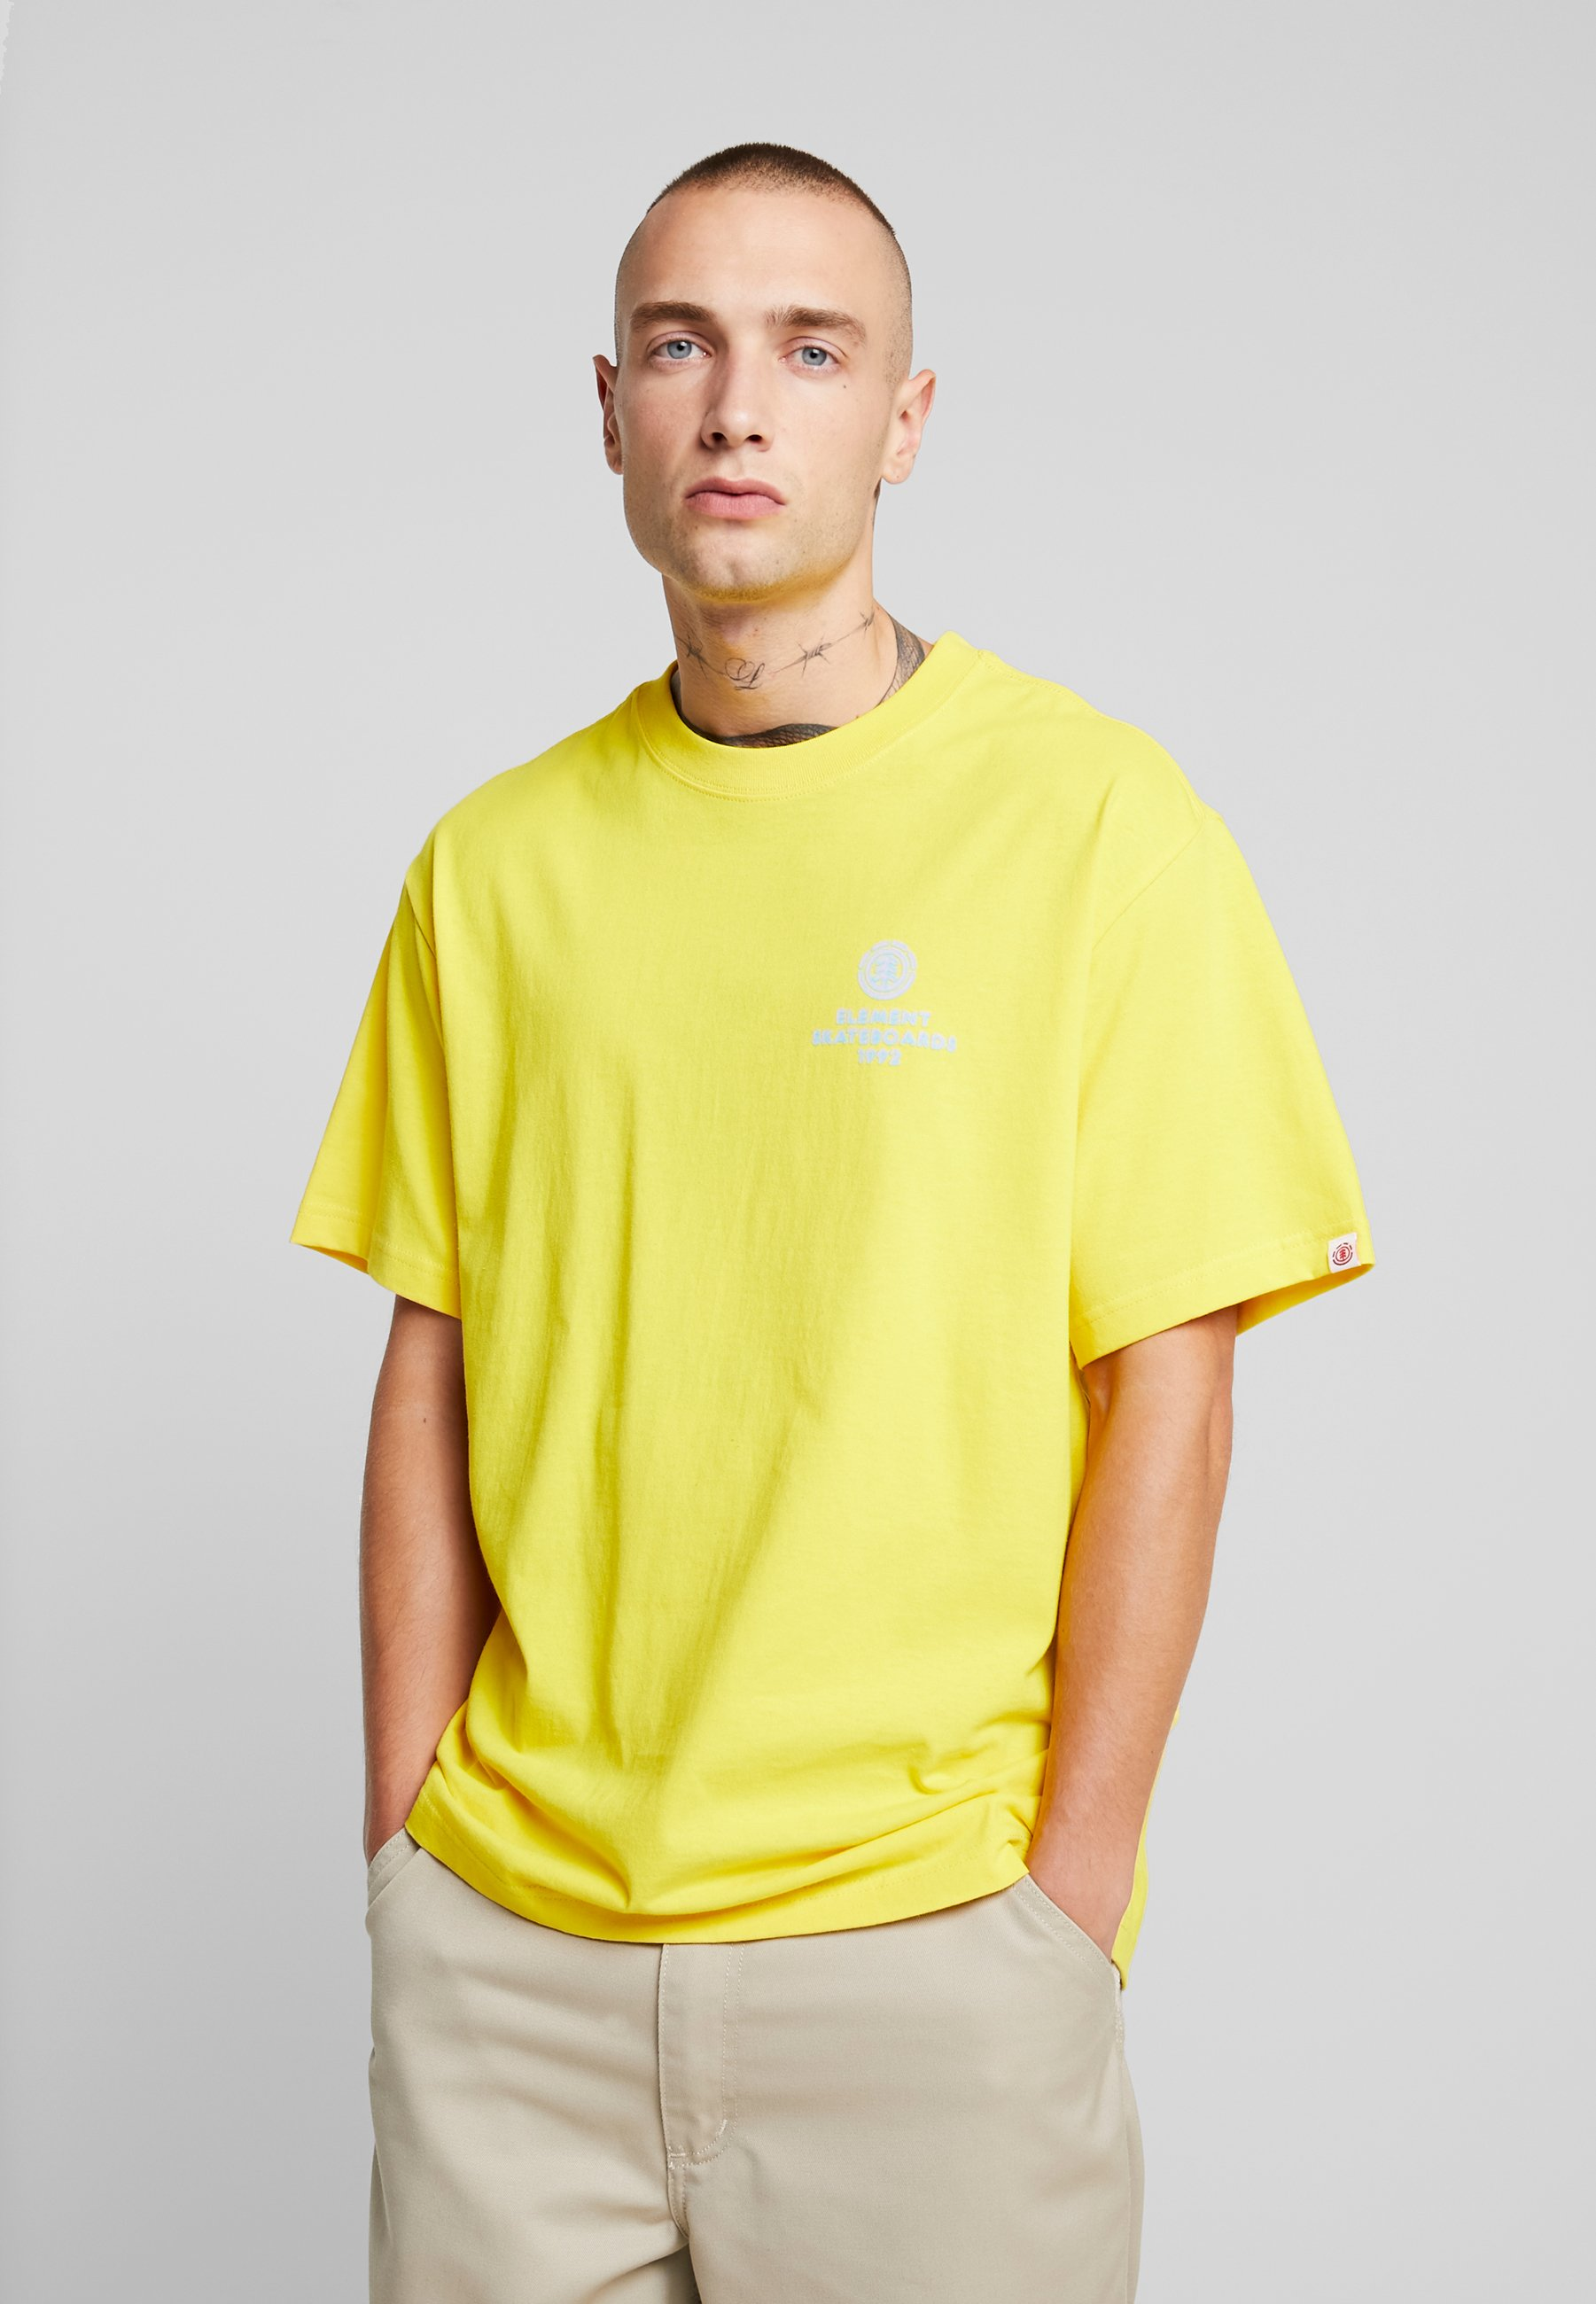 shirt Yellow Element ChromeT Imprimé Bright eHEI29YbWD